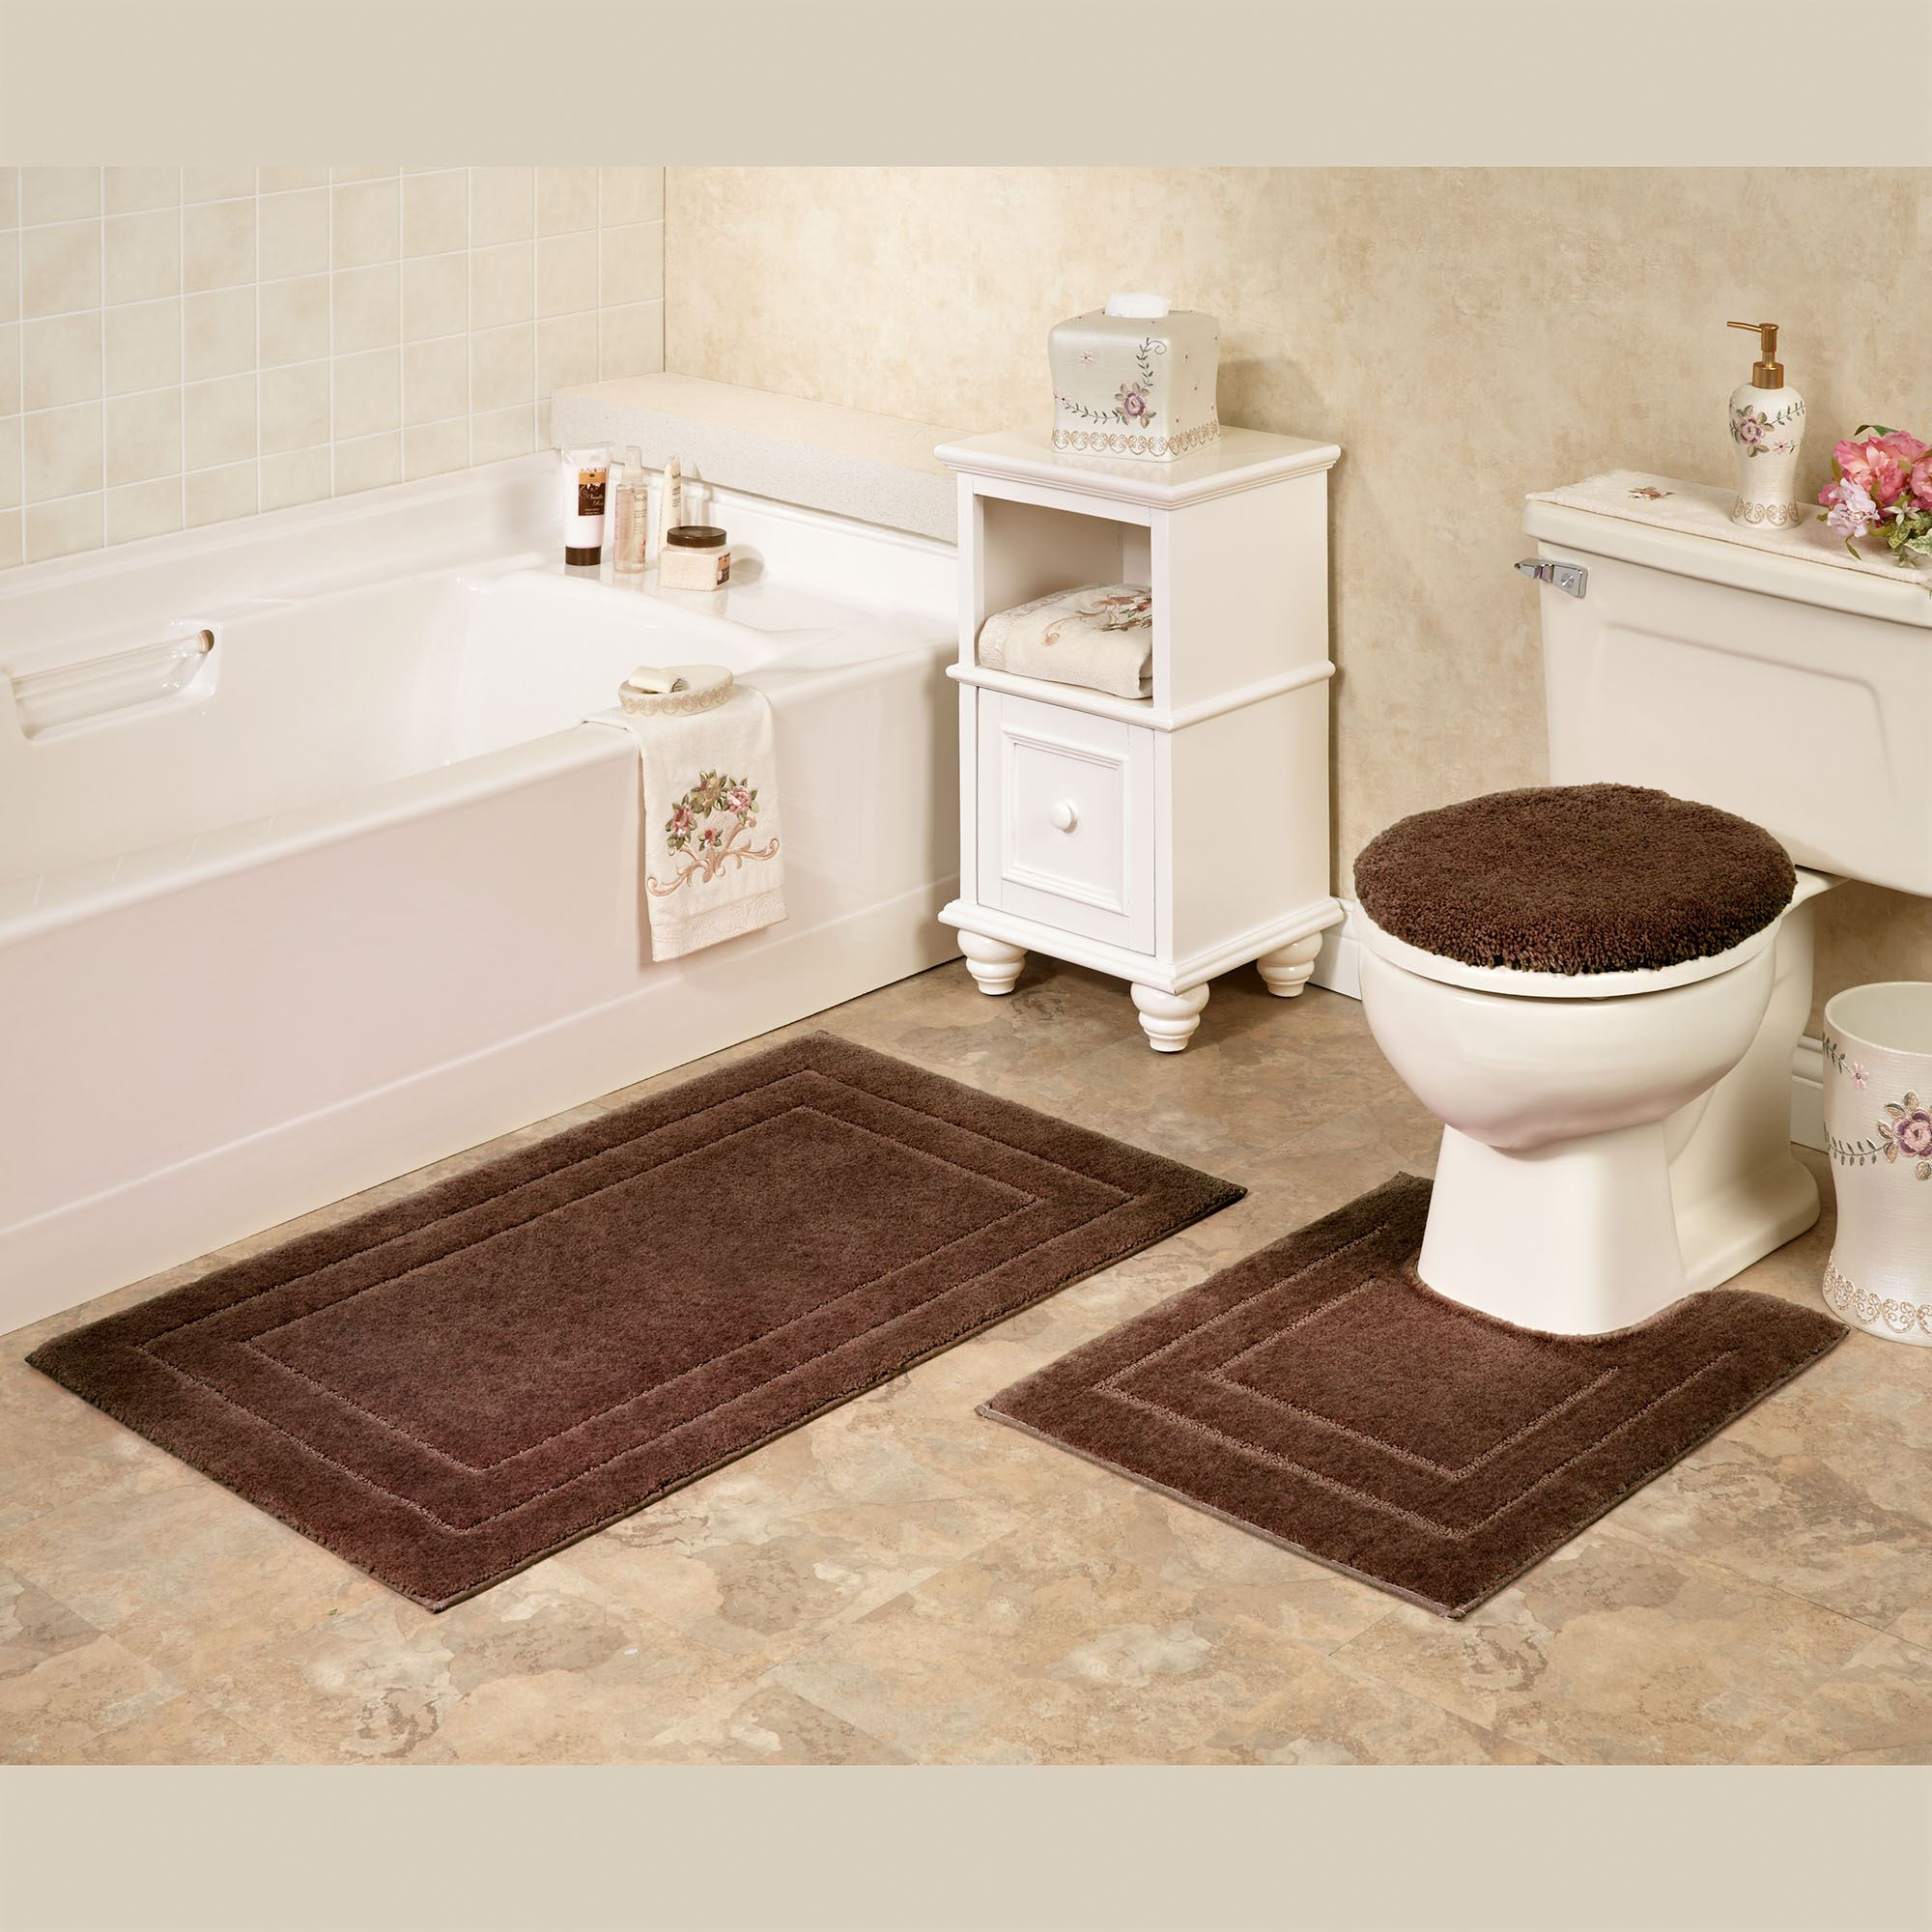 soho solid color bath rugs or contour mats Bathroom Rugs